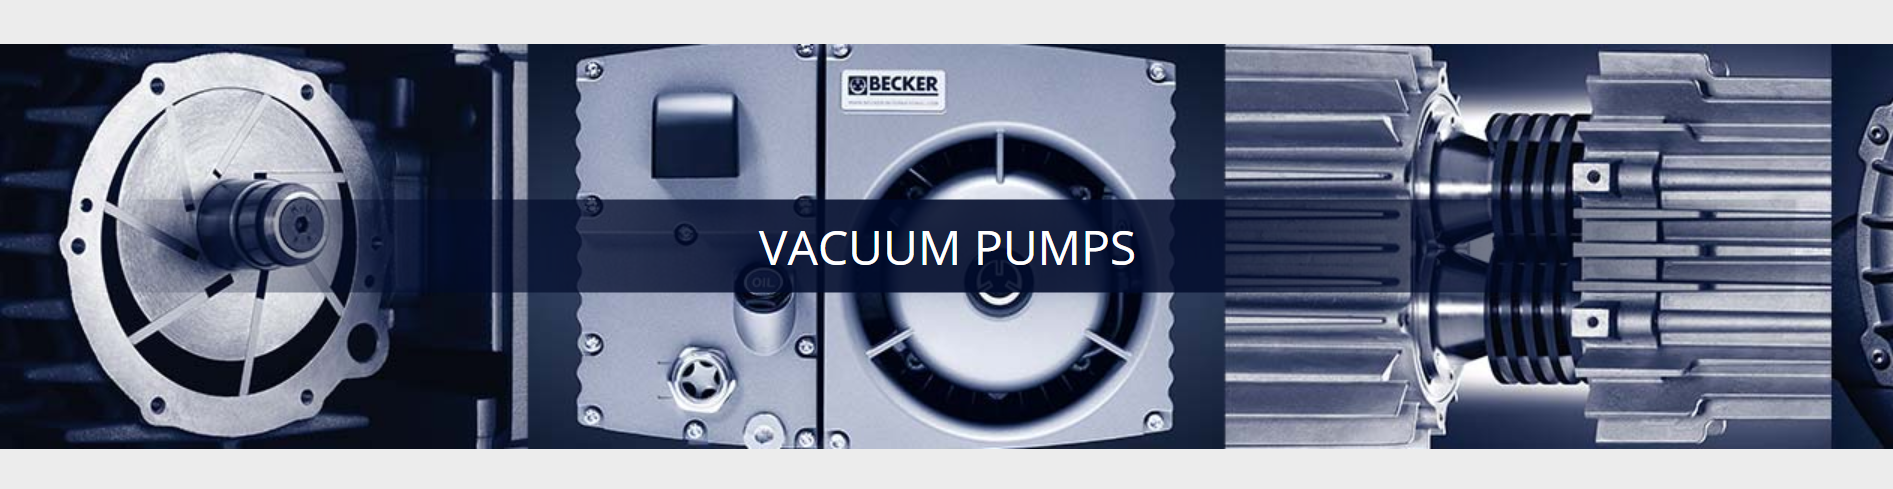 Becker industrial vacuum pumps.